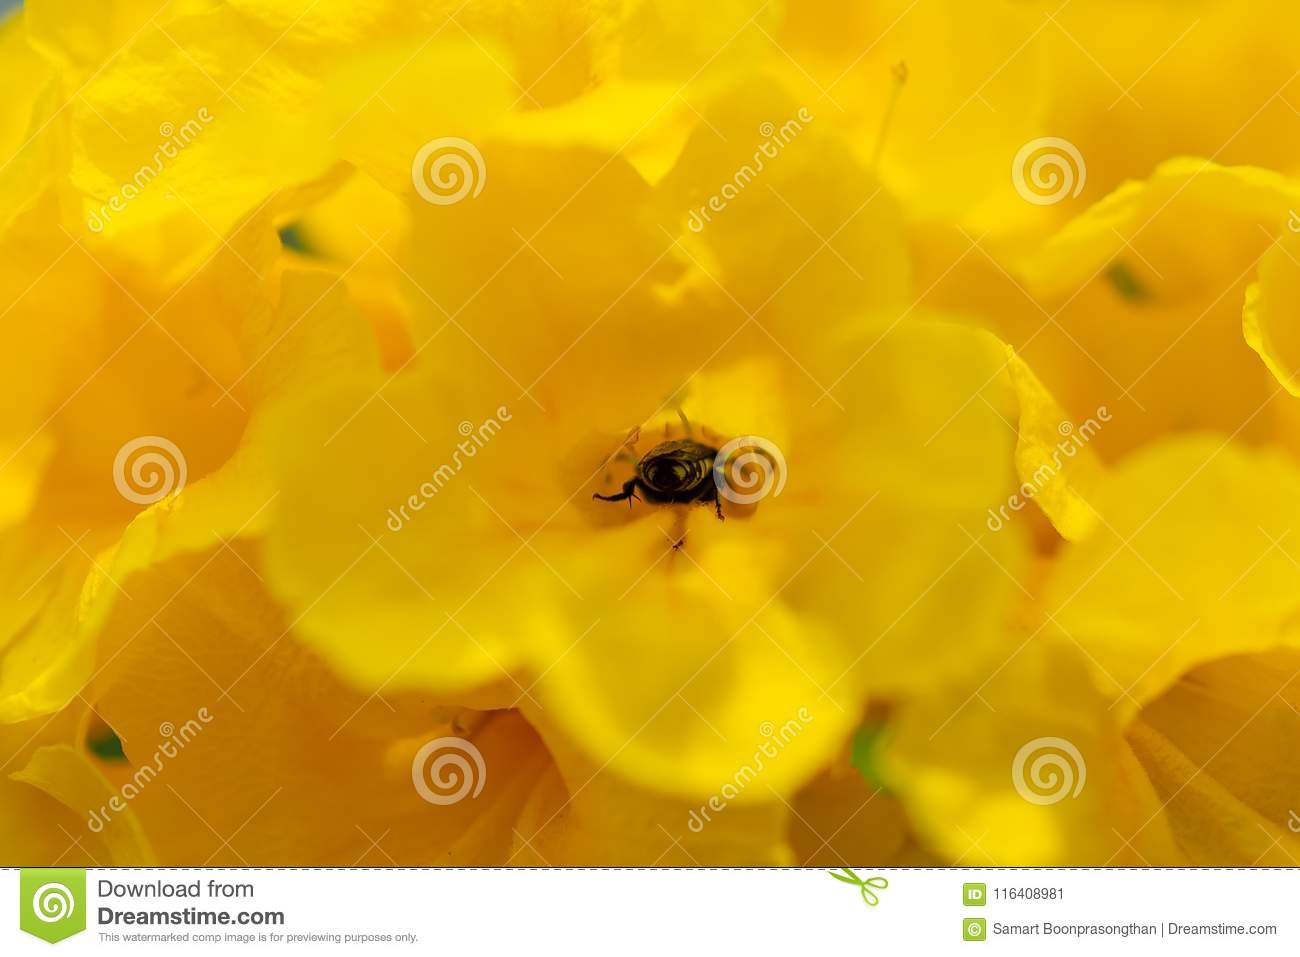 Honey bee with yellow flowers.